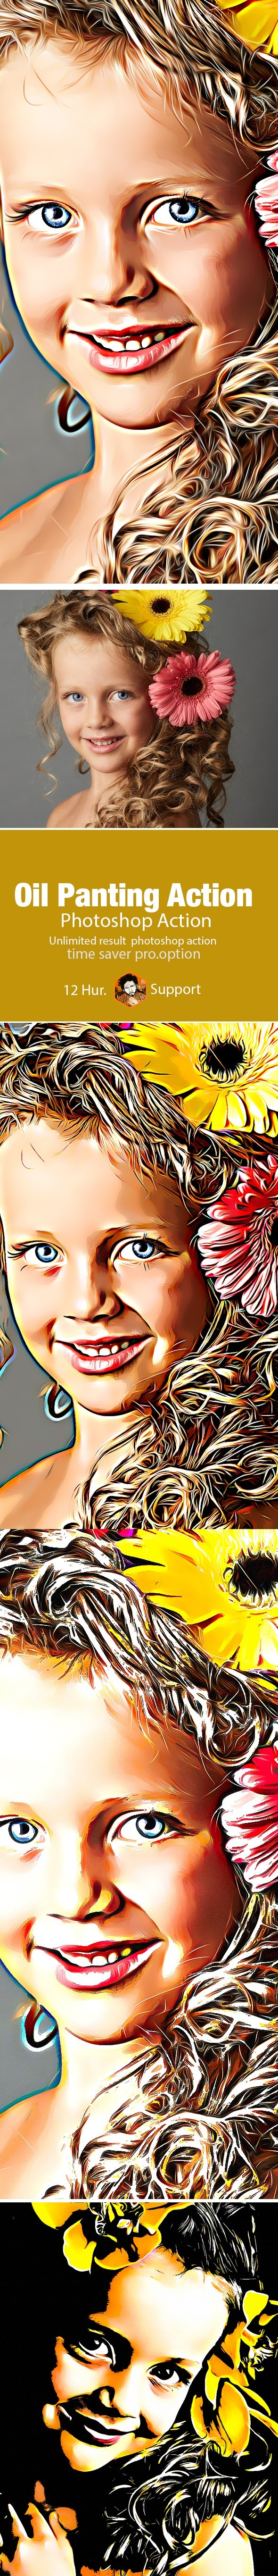 Oil Panting Photoshop Action - Photo Effects Actions